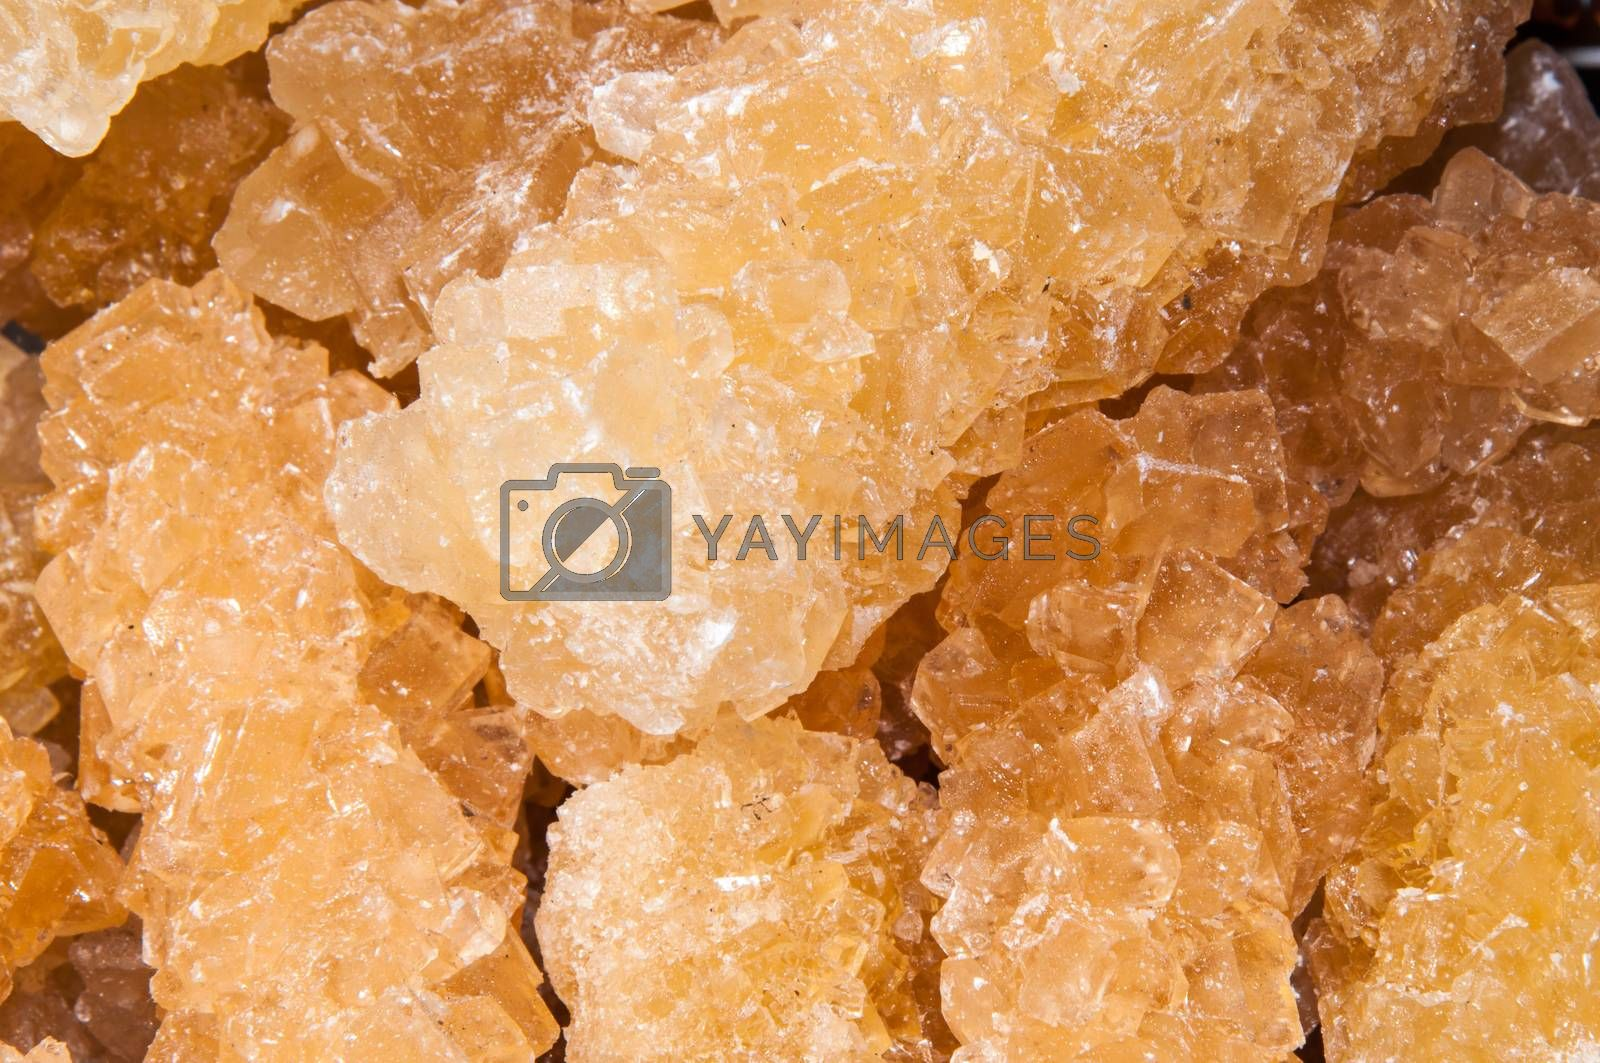 Oriental sweetness of crystal sugar or navat environmentally-friendly product made by hand according to old recipes without chemical additives